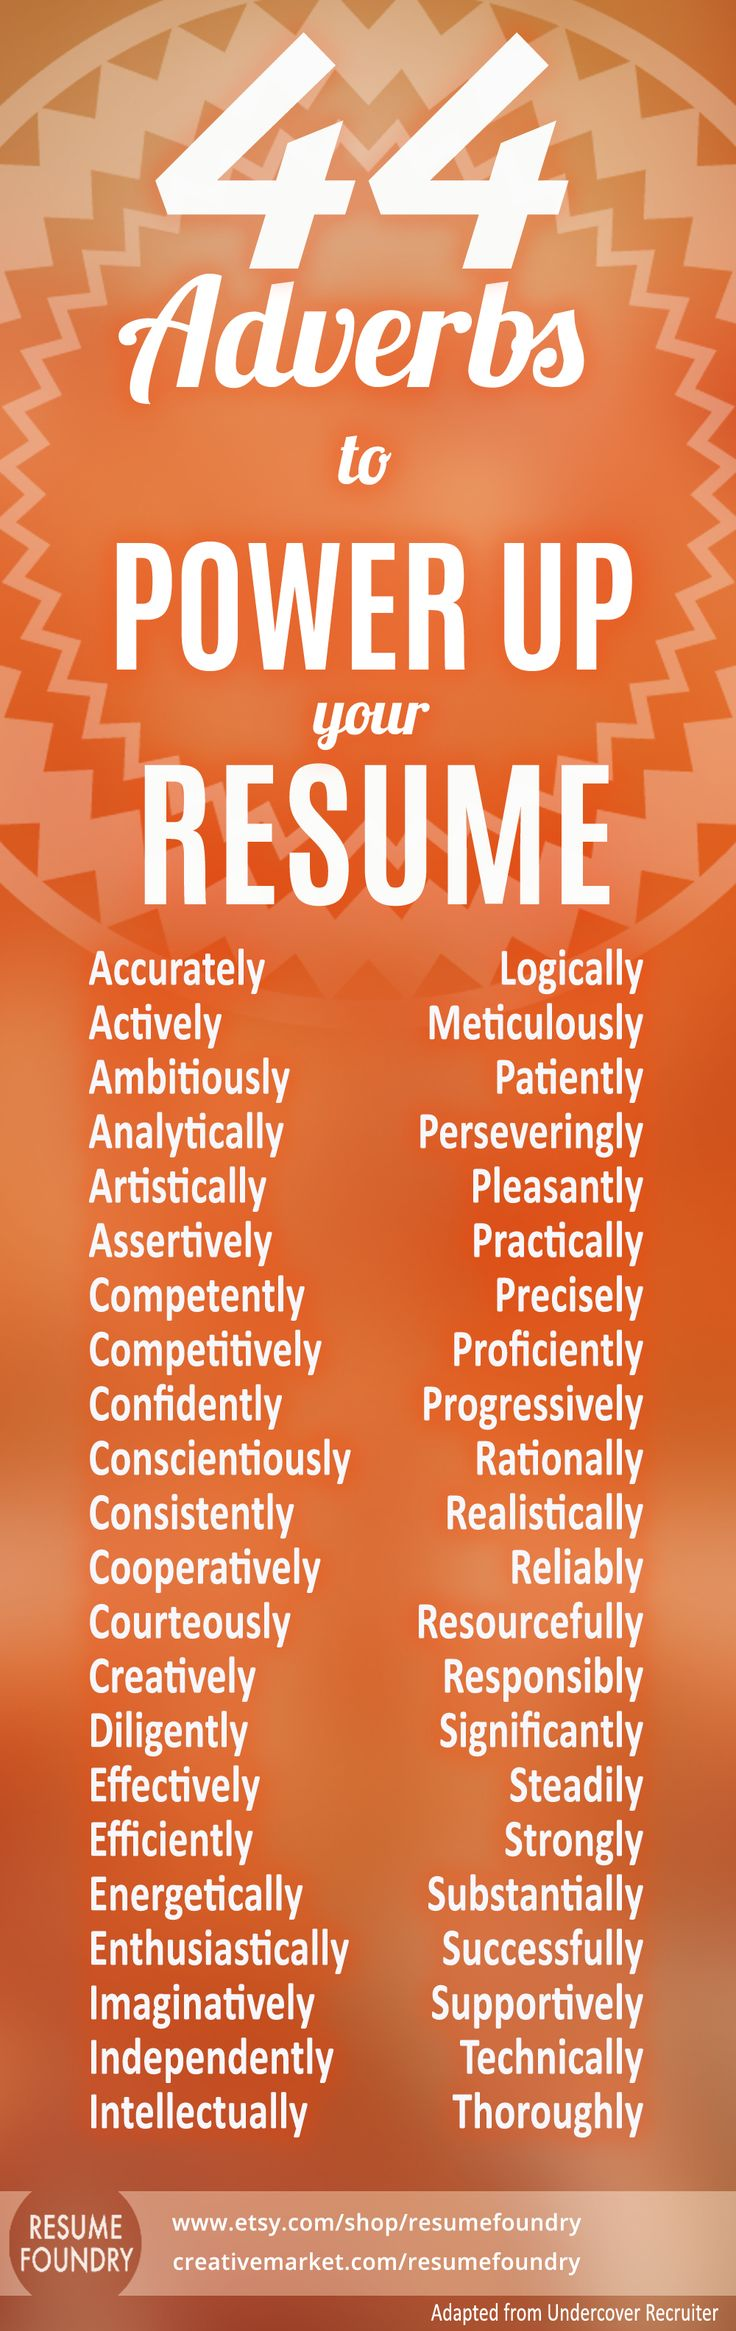 Best Resume Ideas Images On   Career Gym And Interview